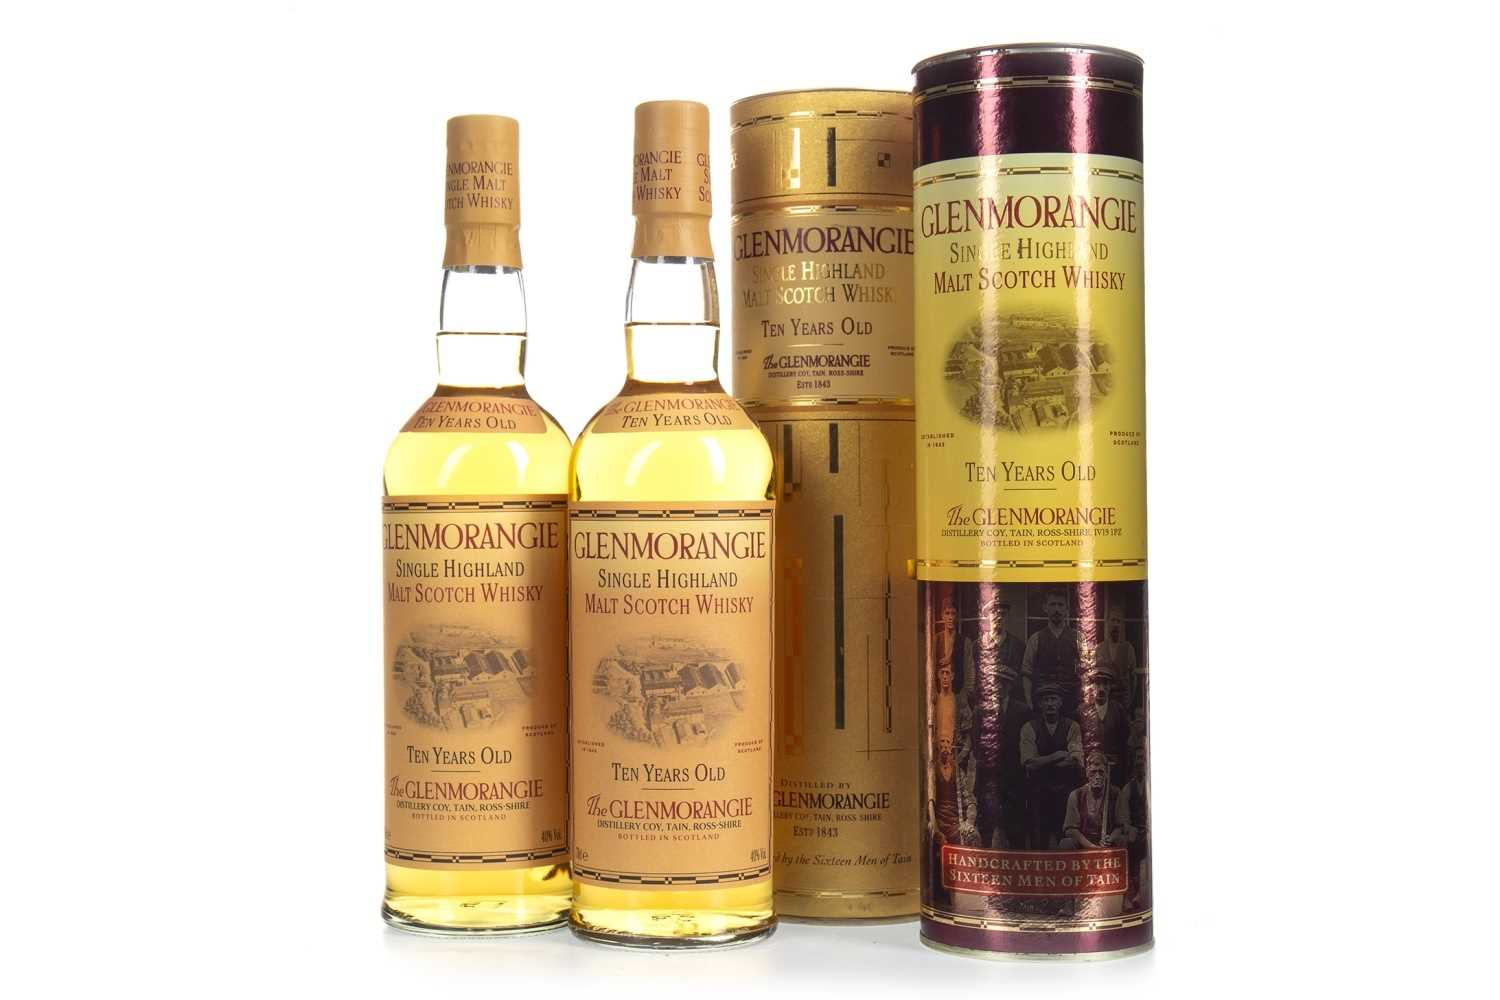 Lot 305-TWO BOTTLES OF GLENMORANGIE 10 YEARS OLD